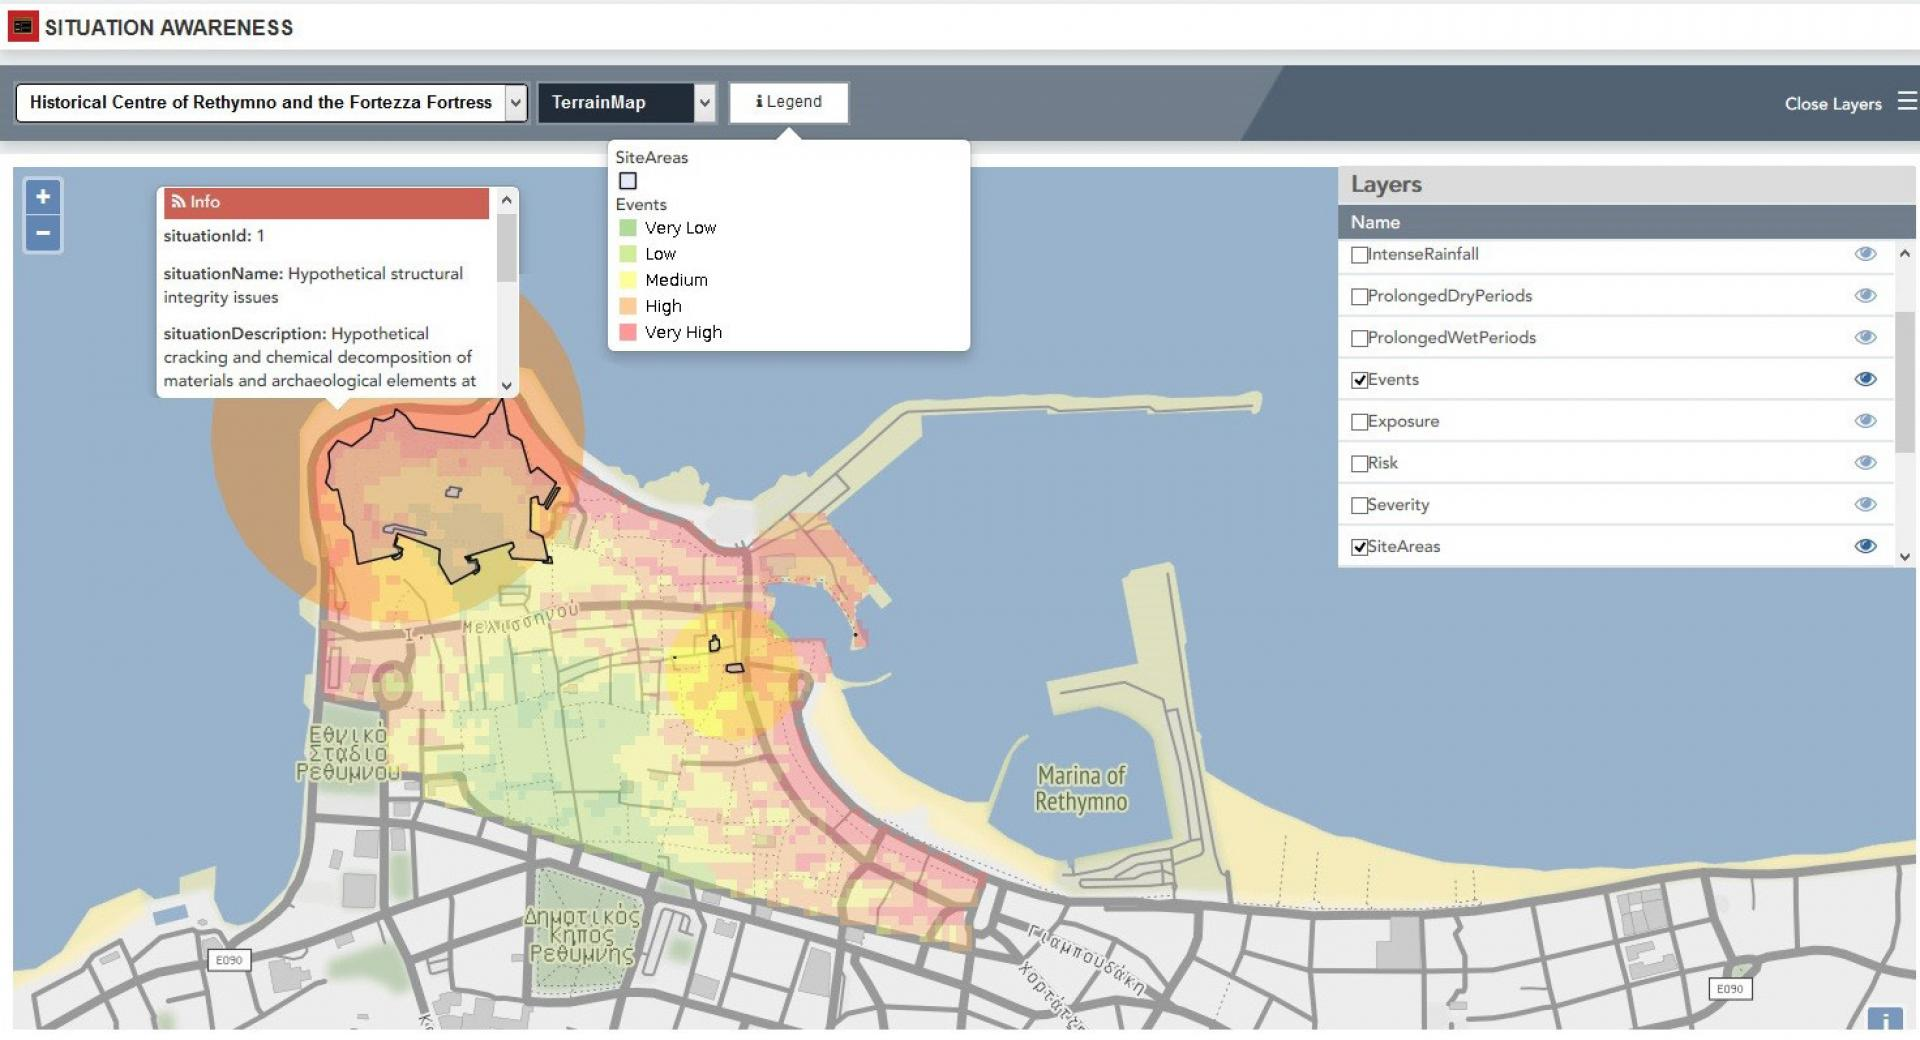 Situation awareness displayed through layers on a map, including Events, Exposure, Risk, Severity, Site Areas, etc.